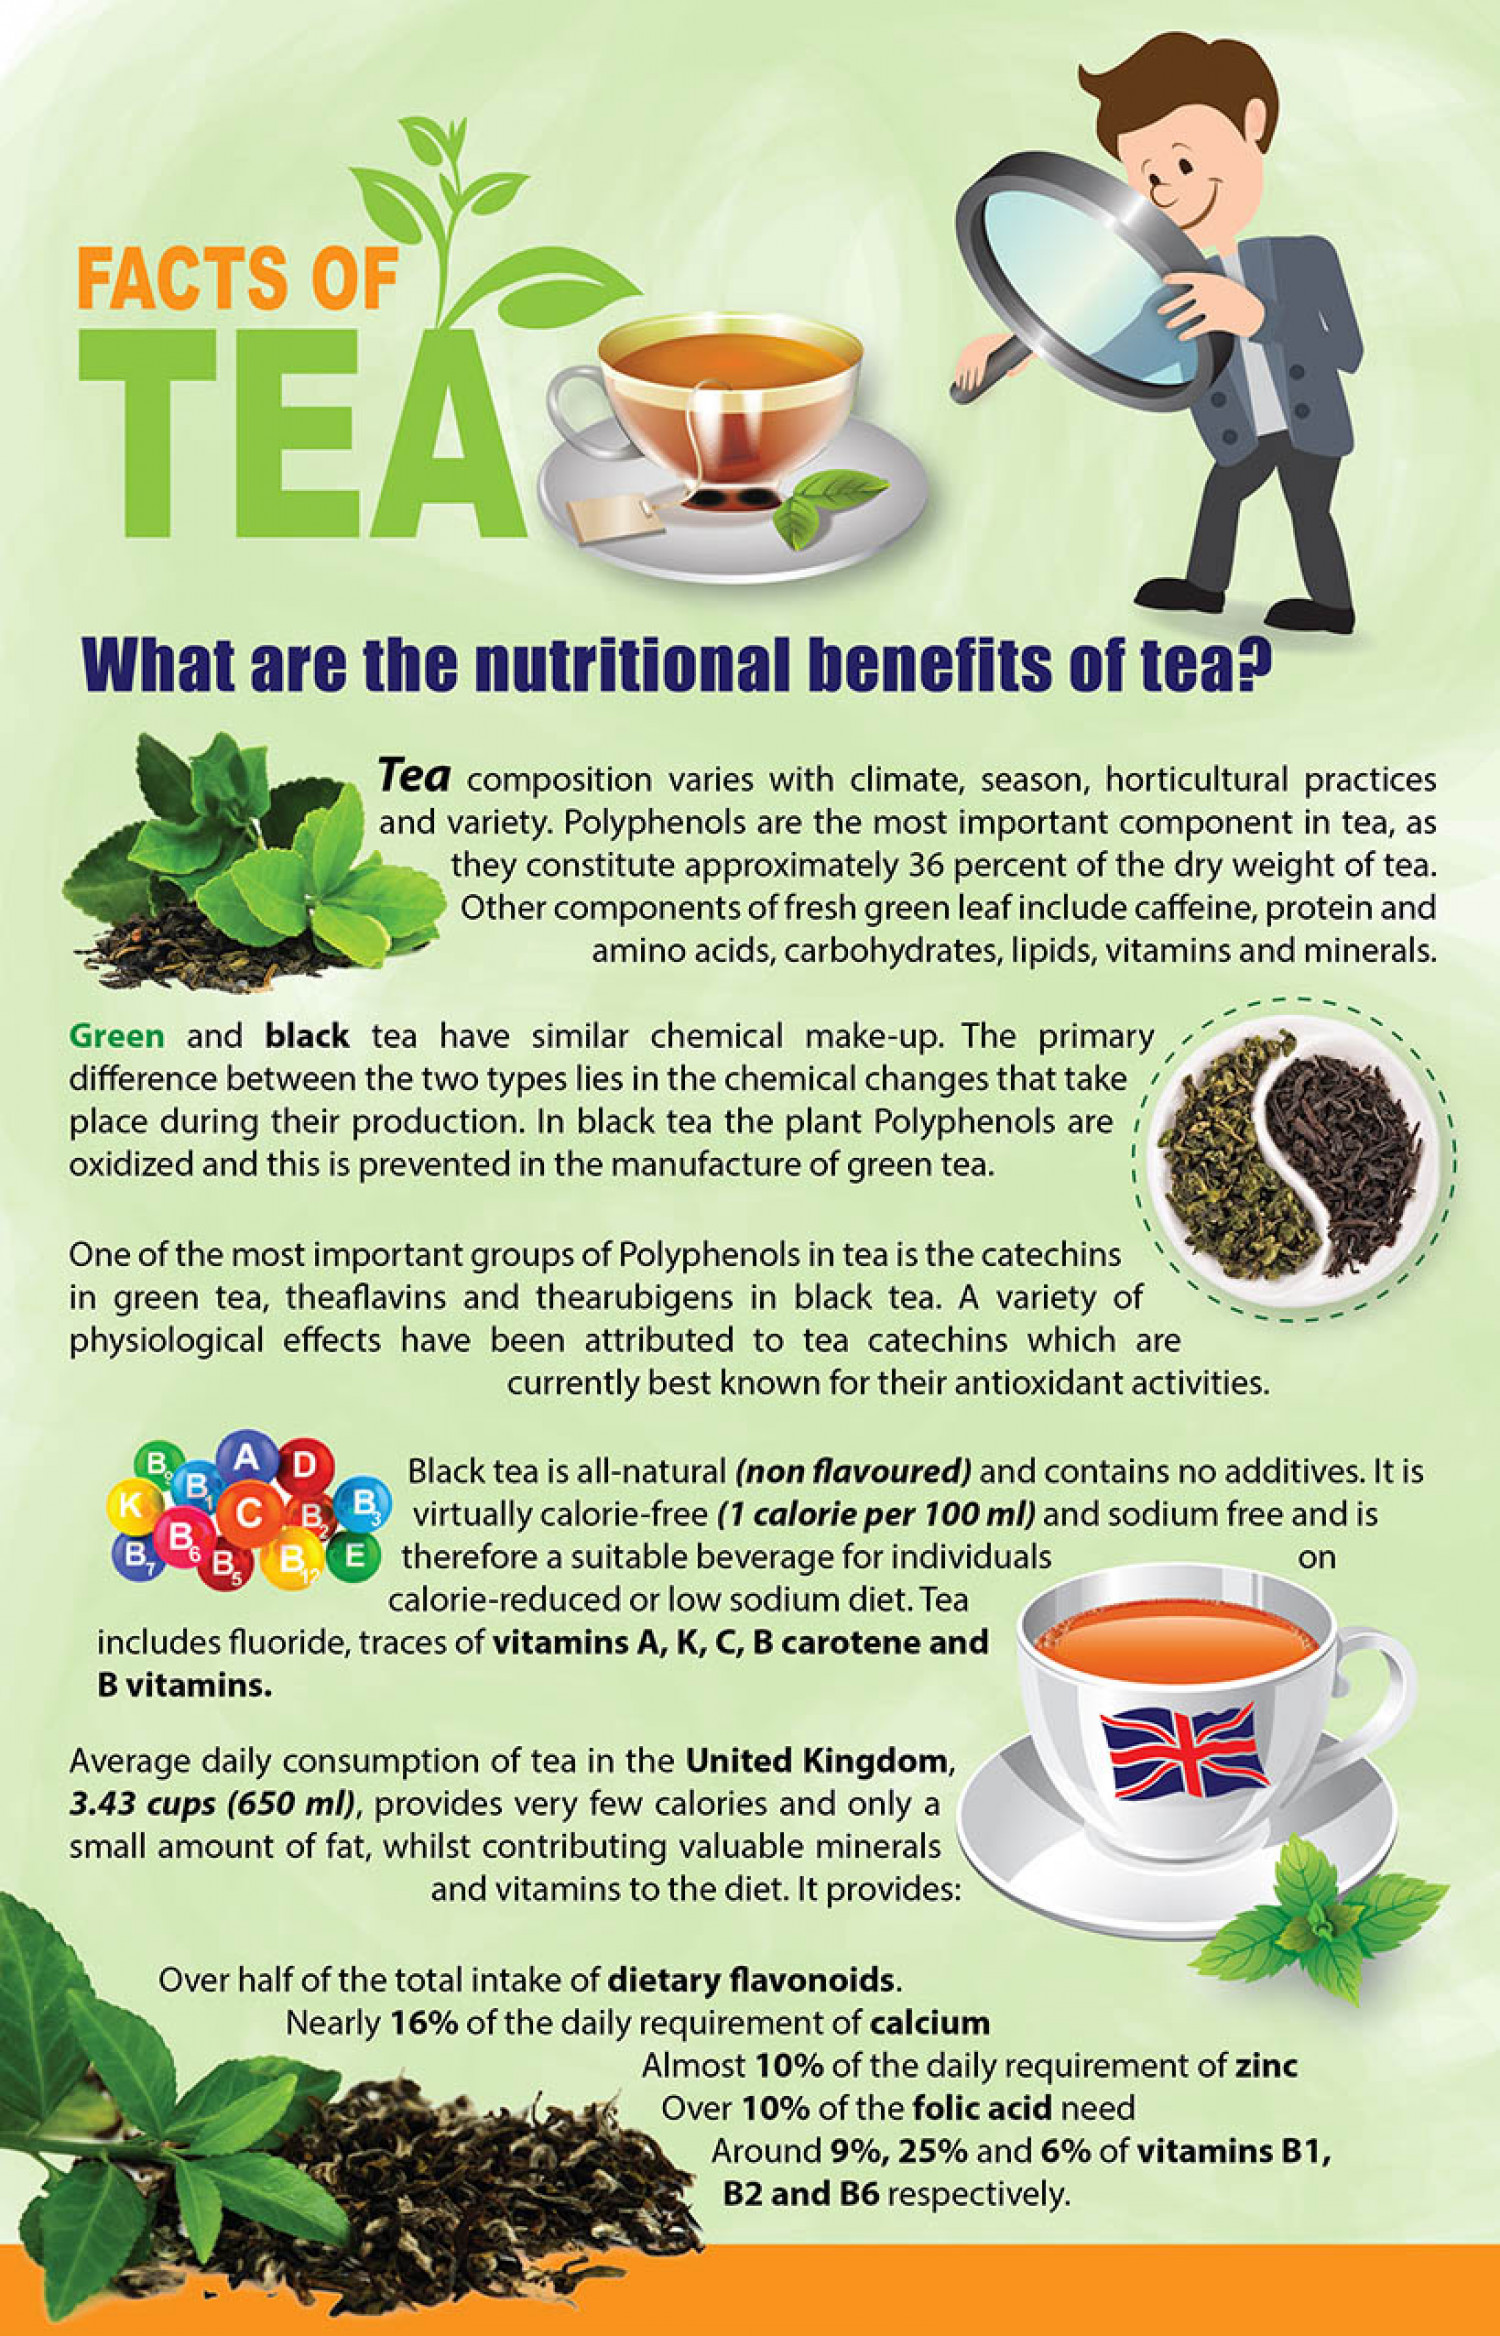 Facts of Tea - What are the nutritional benefits of tea? Infographic